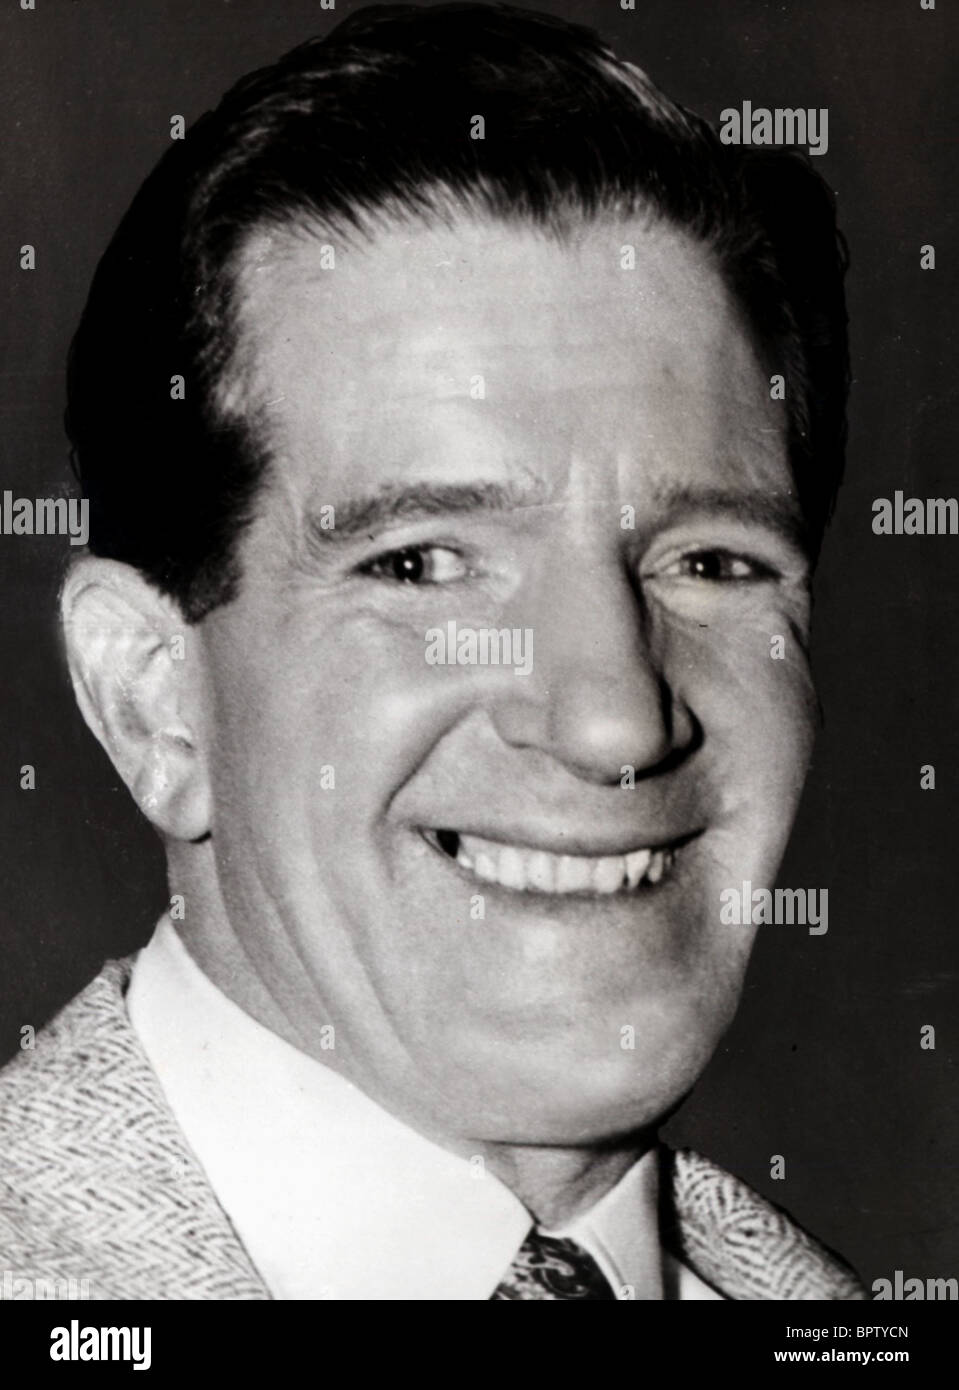 TED RAY ACTOR & COMEDIAN (1954) - Stock Image